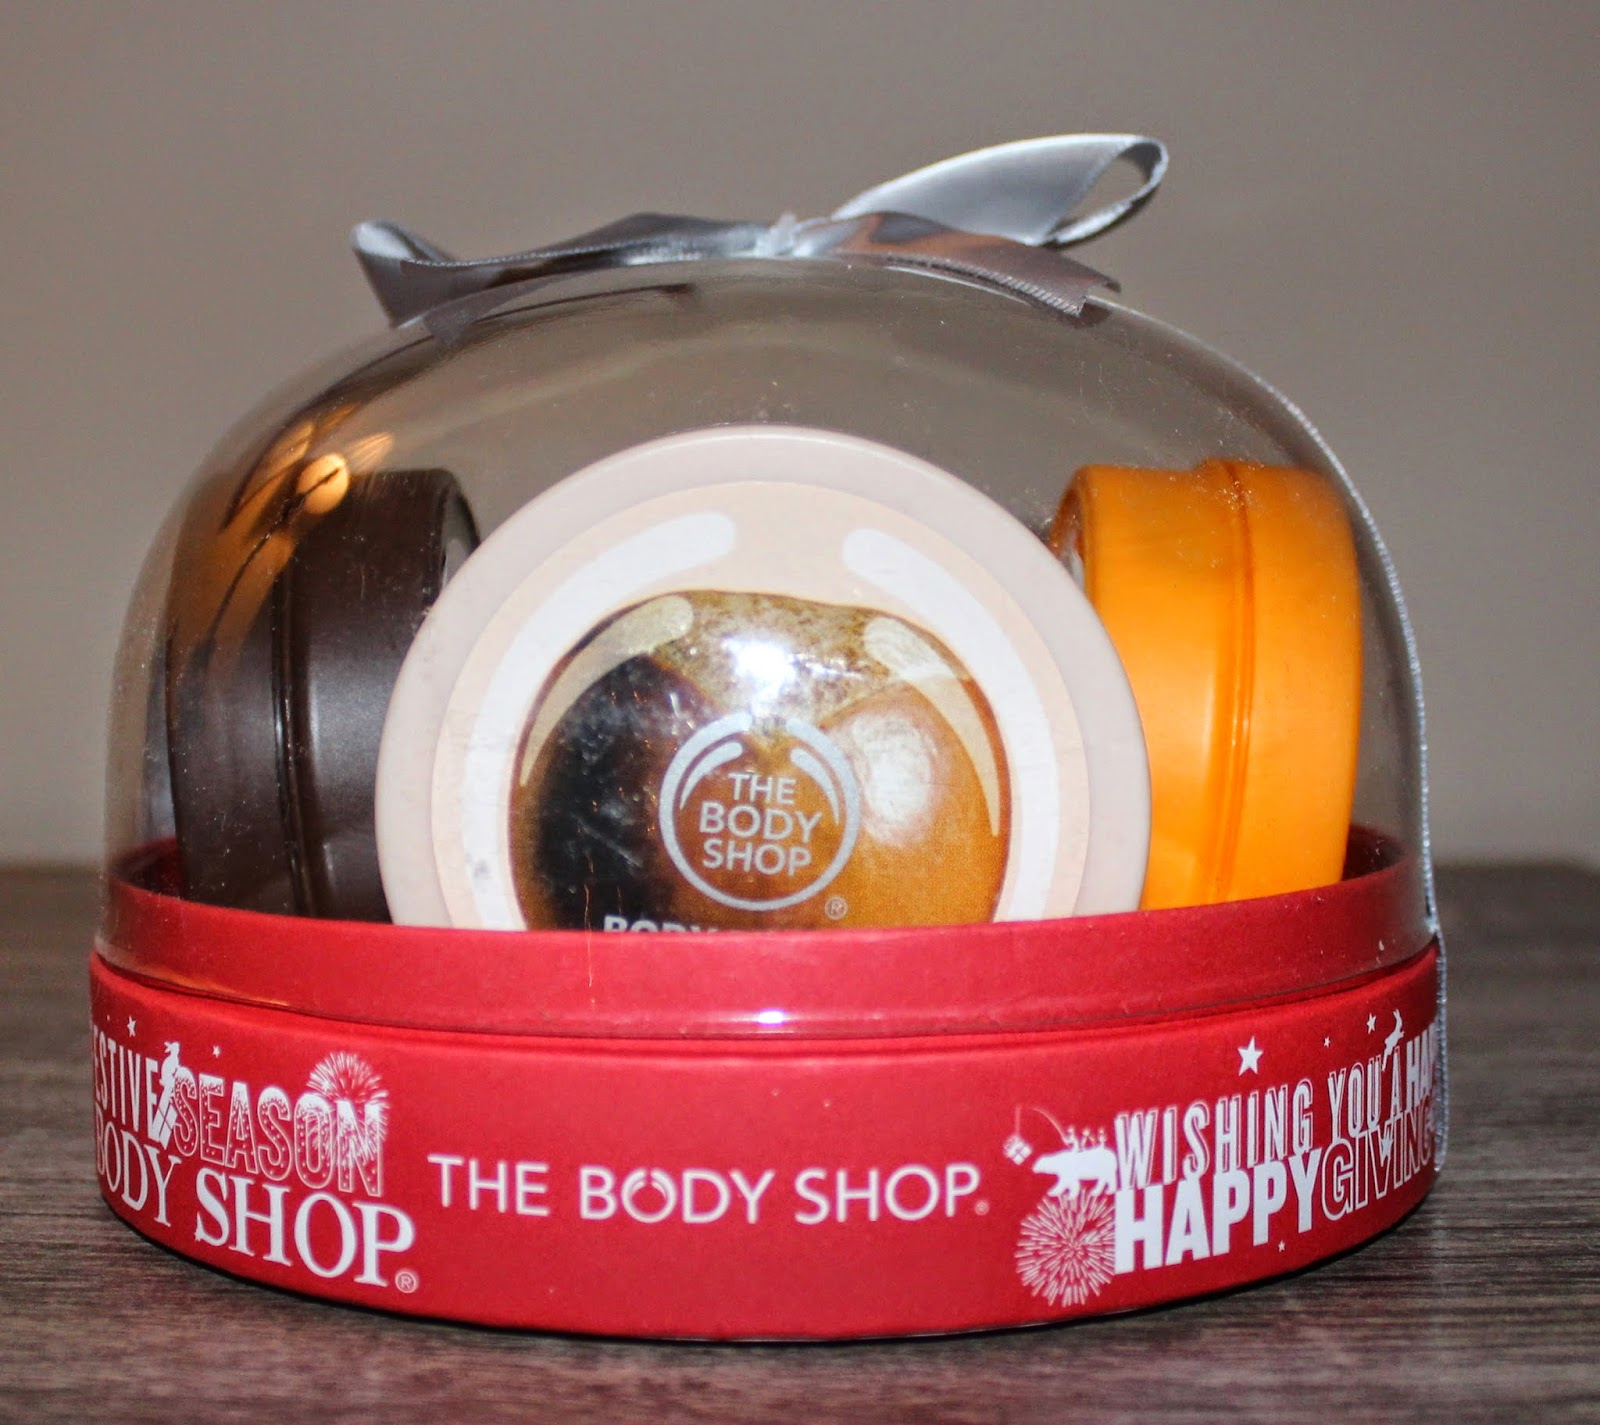 The Body Shop's The Best of Body Butter Snow Globe